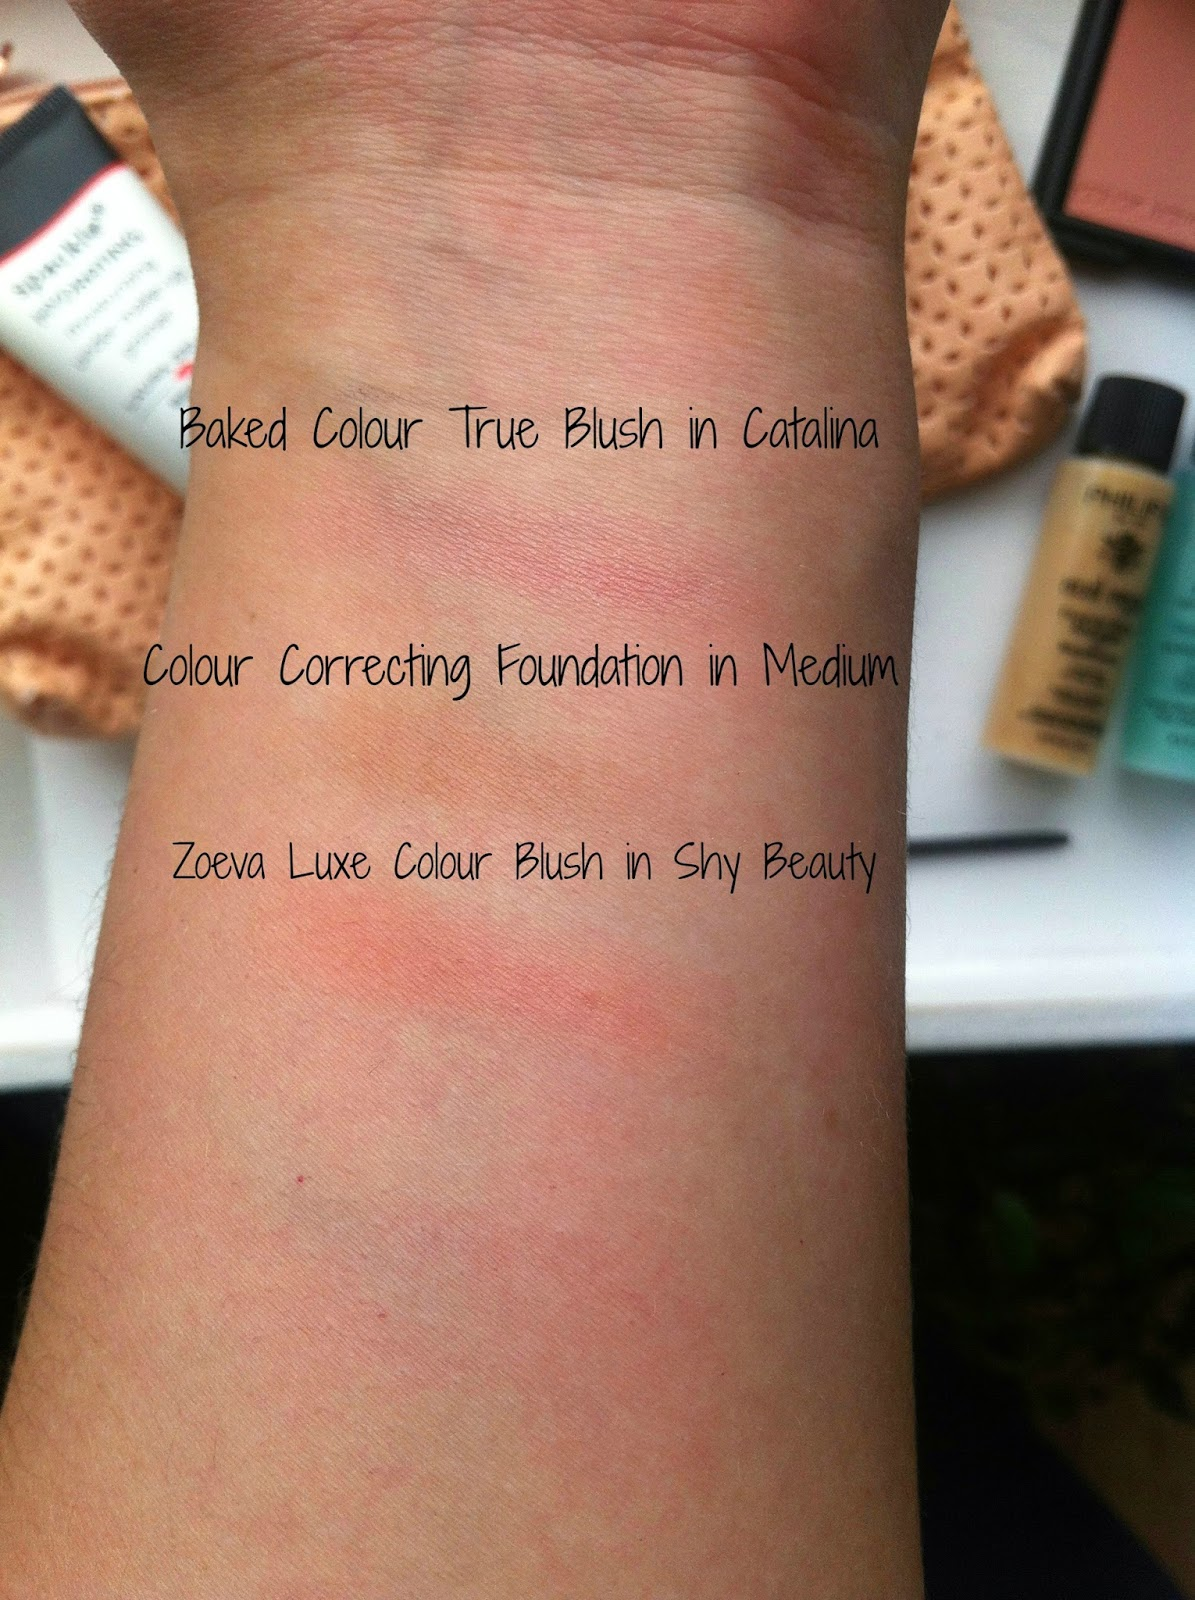 "<img src=""swatches.jpg"" alt=""laura geller flawless in a flash beauty bay Baked Balance-N-Brighten Colour Correcting Foundation Baked Colour True Blush in the shade Catalina zoeva luxe blush shy beauty swatch swatches"">"